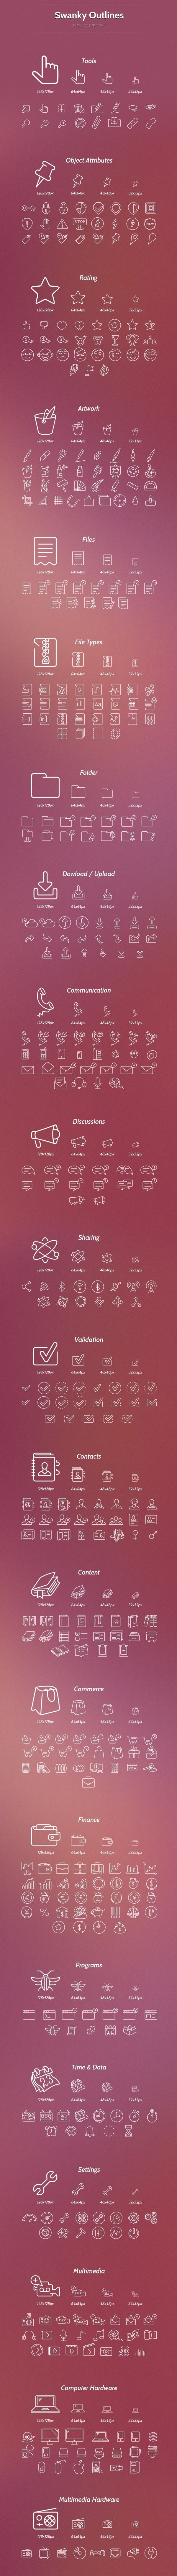 Swanky Outlines - 1000 ICON SET http://pixelkit.com/amember/aff/go?r=27299&i=25 #icon #design